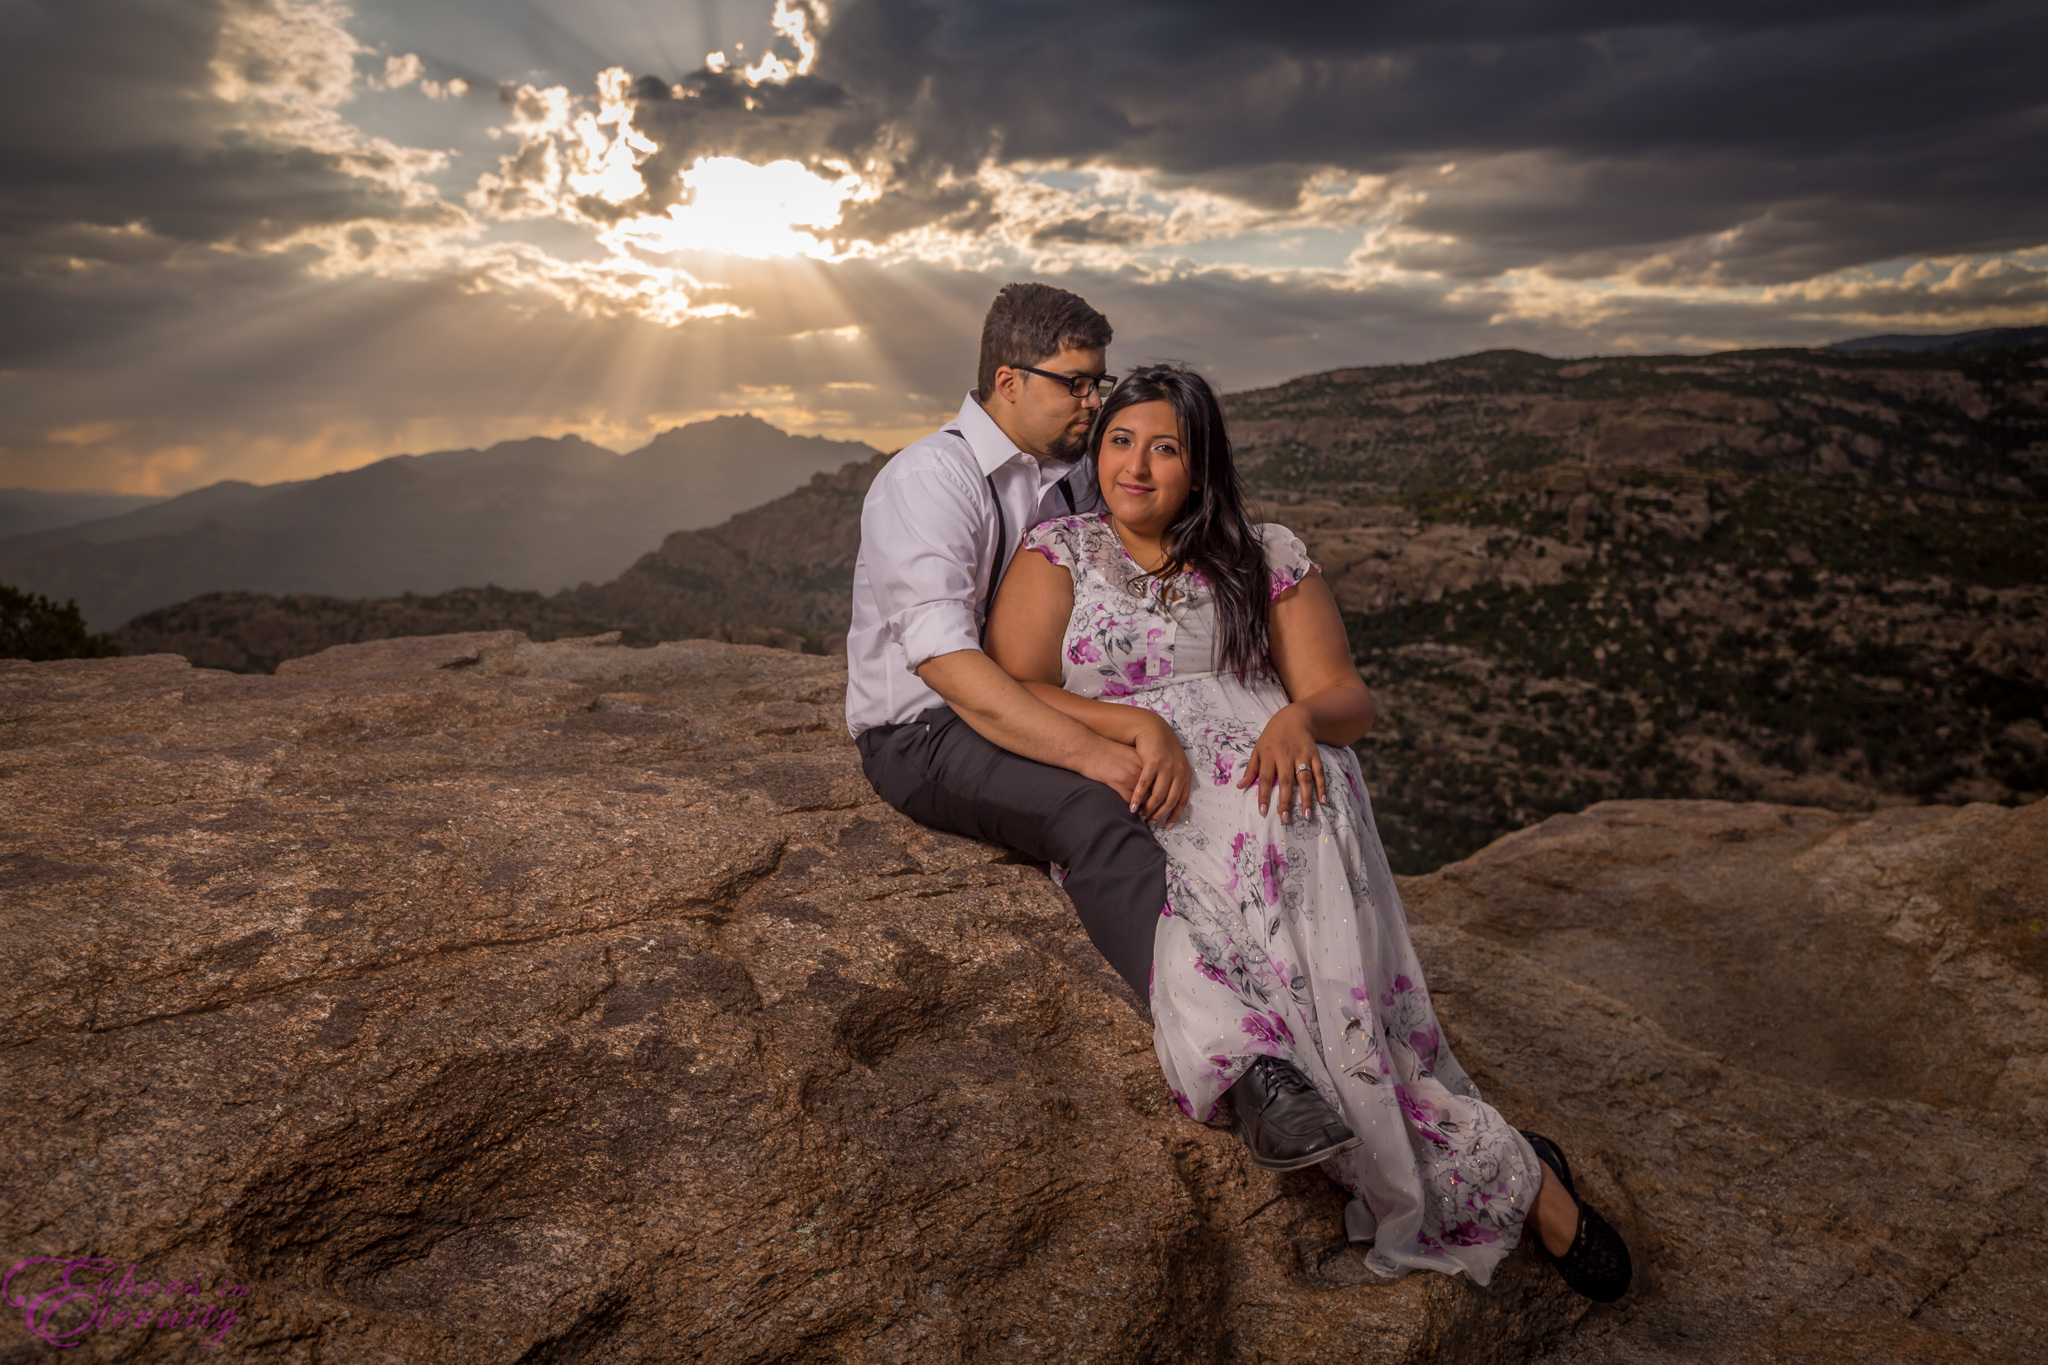 Zach and EJ Tucson Wedding and Engagement Photographer Mt. Lemmon Windy Point 17.jpg